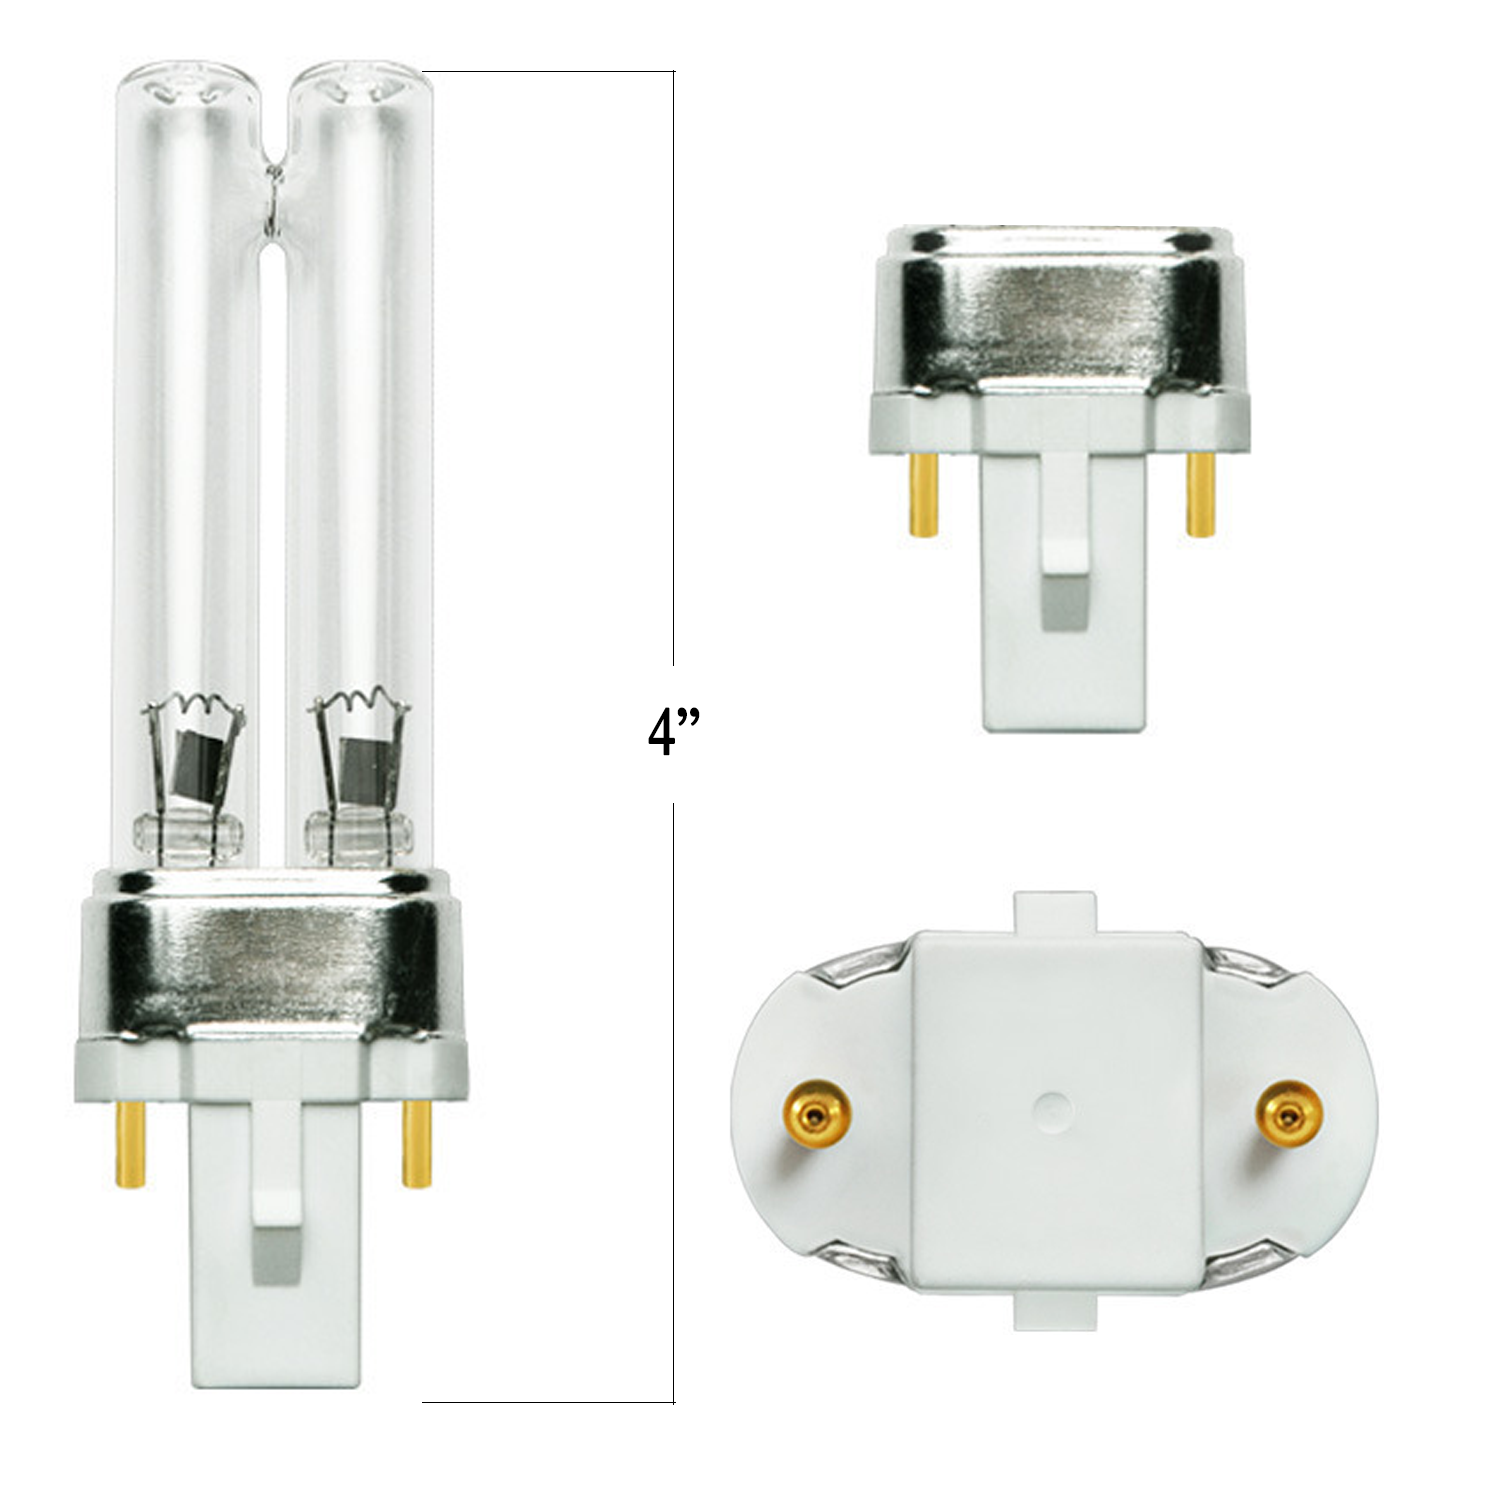 5 Watt UV Bulb Fits Many Models - Pond Supplies 4 Less